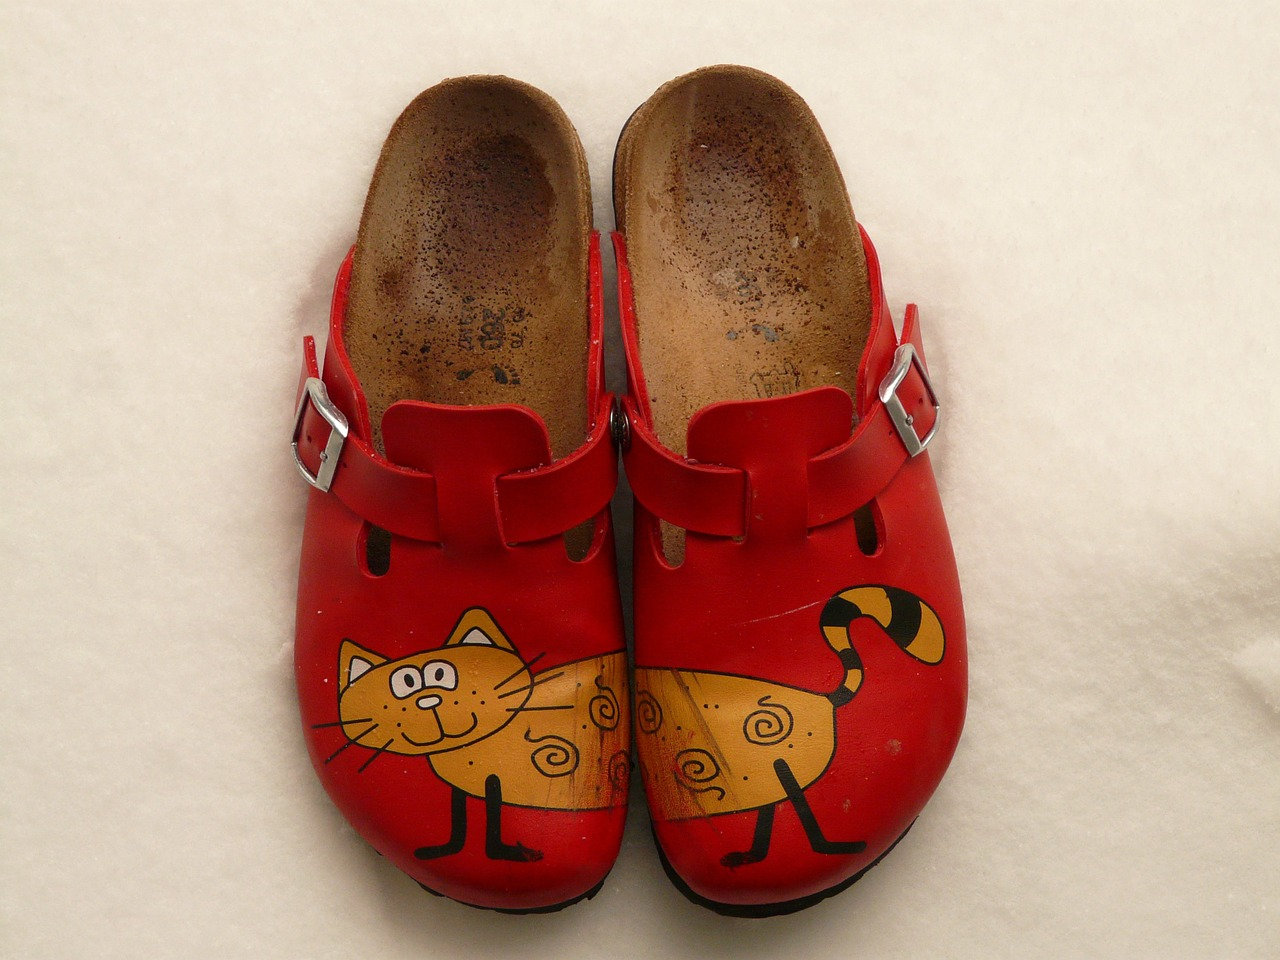 slippers,birkenstock,cat,red,colorful,shoe,run,go,clothing,free pictures, free photos, free images, royalty free, free illustrations, public domain